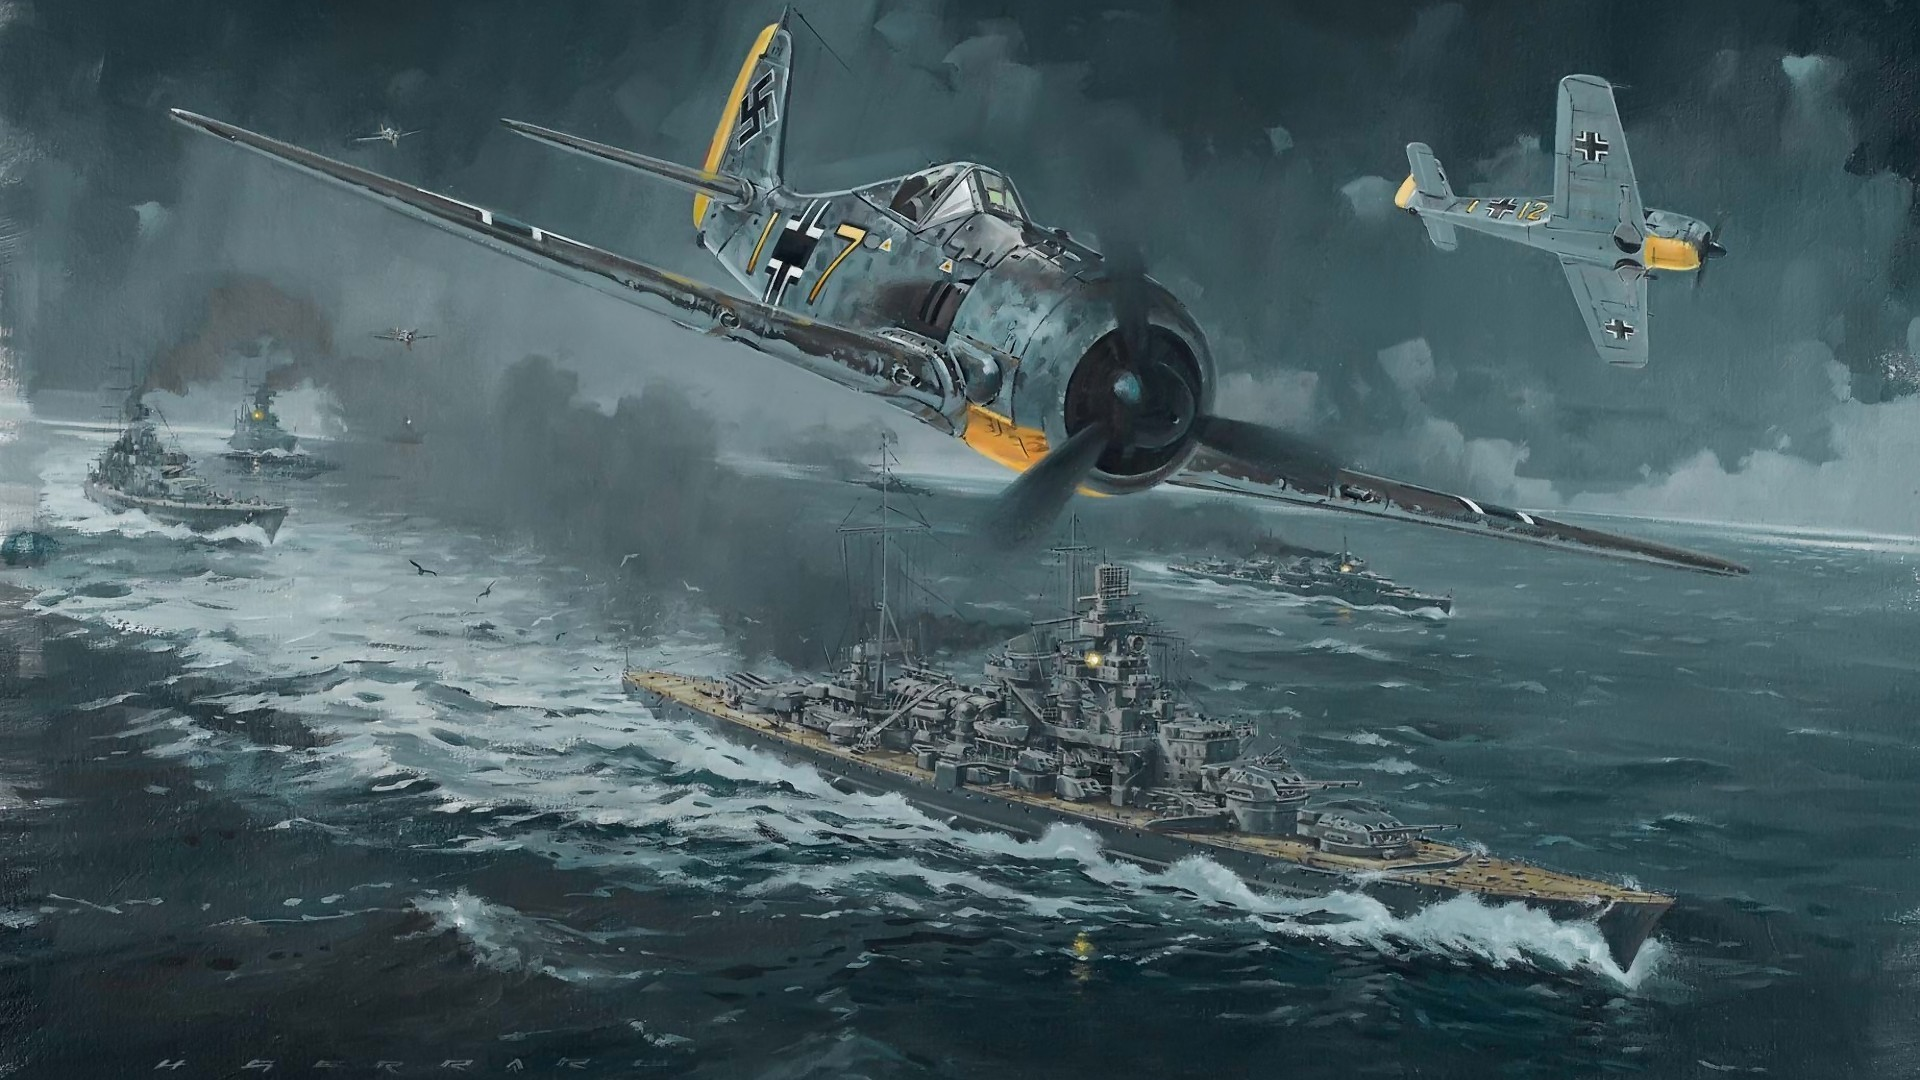 wwii-world-war-airplane-plane-drawing-battleship-fw-190-channel-dash-1942-operation-cerberus-hd-1080p-wallpaper